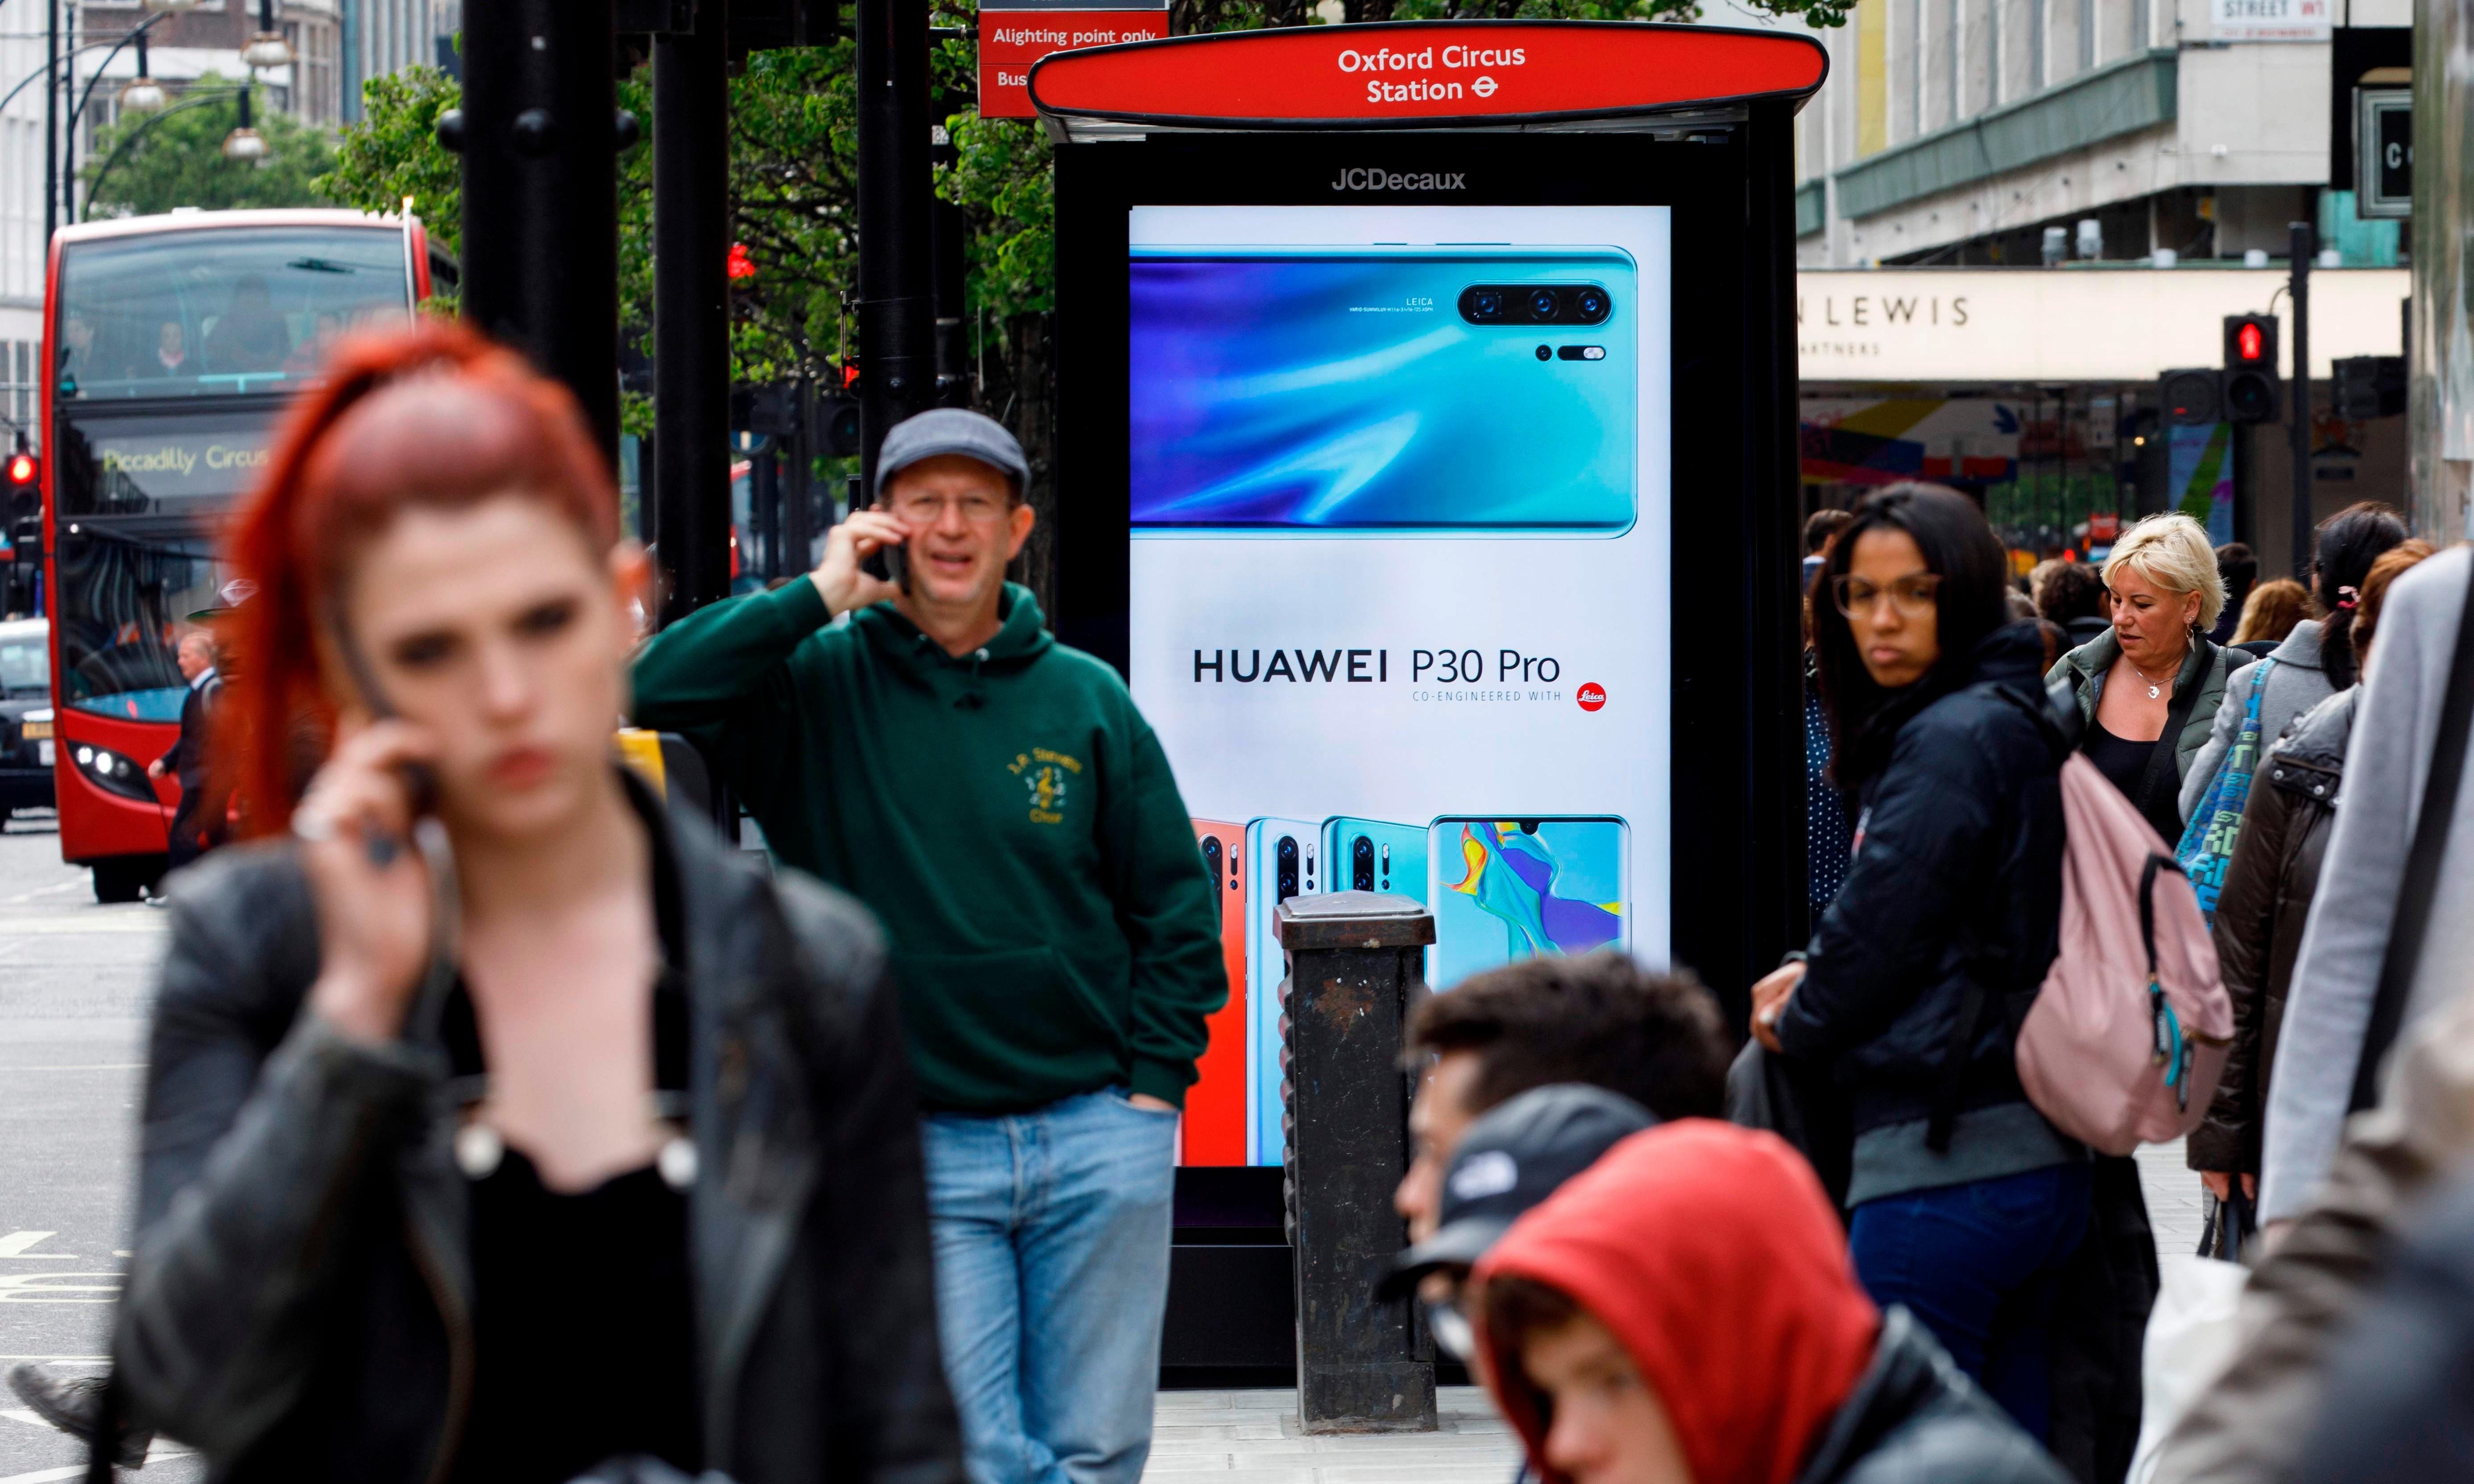 Huawei poses security threat to UK, says former MI6 chief